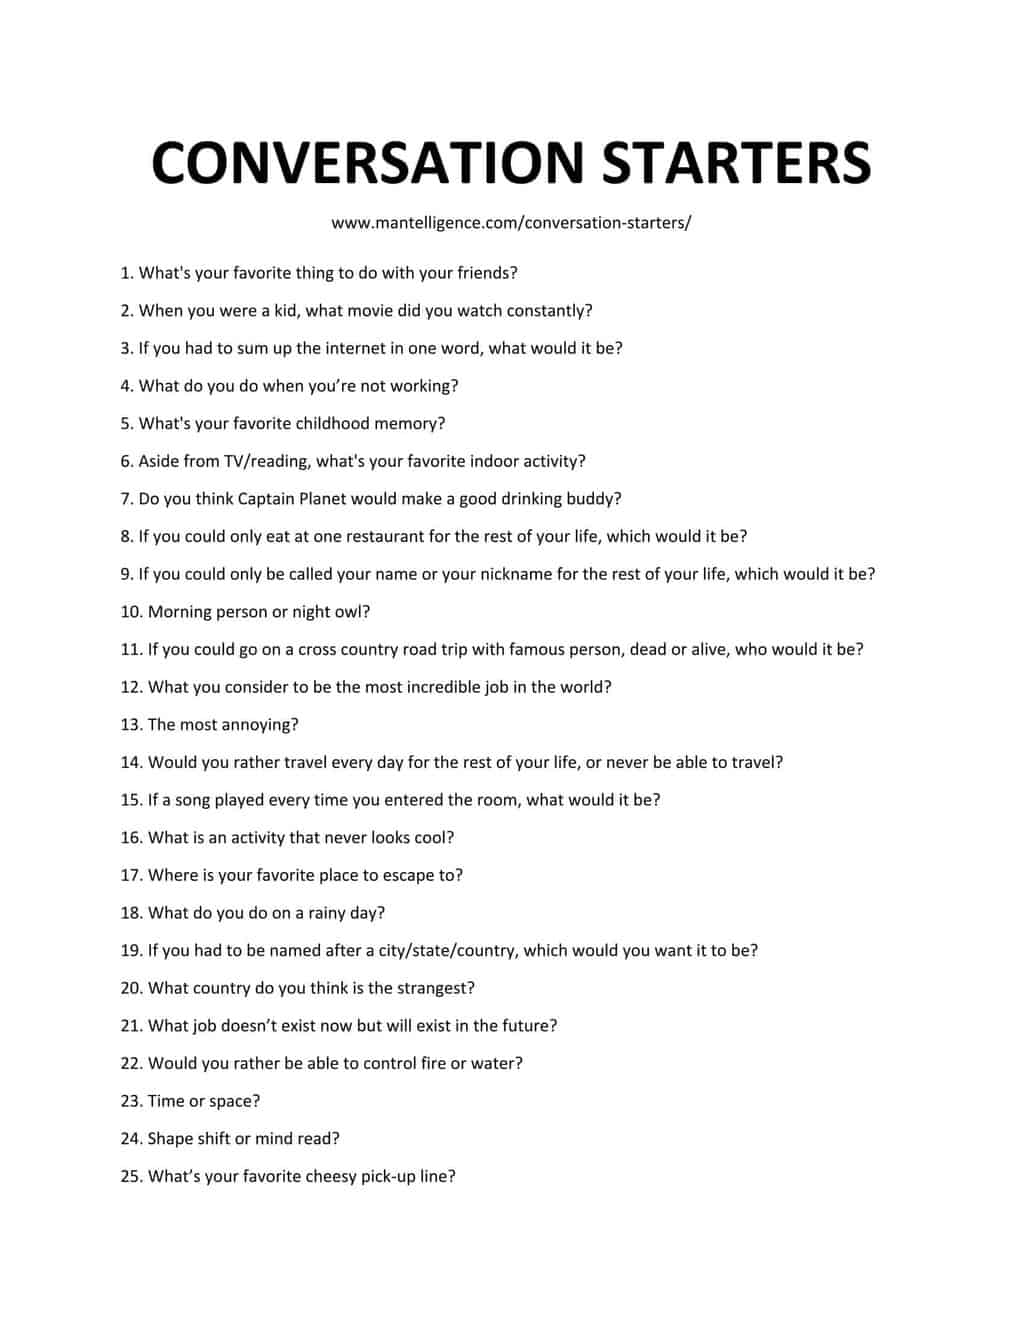 List of Conversation Starters